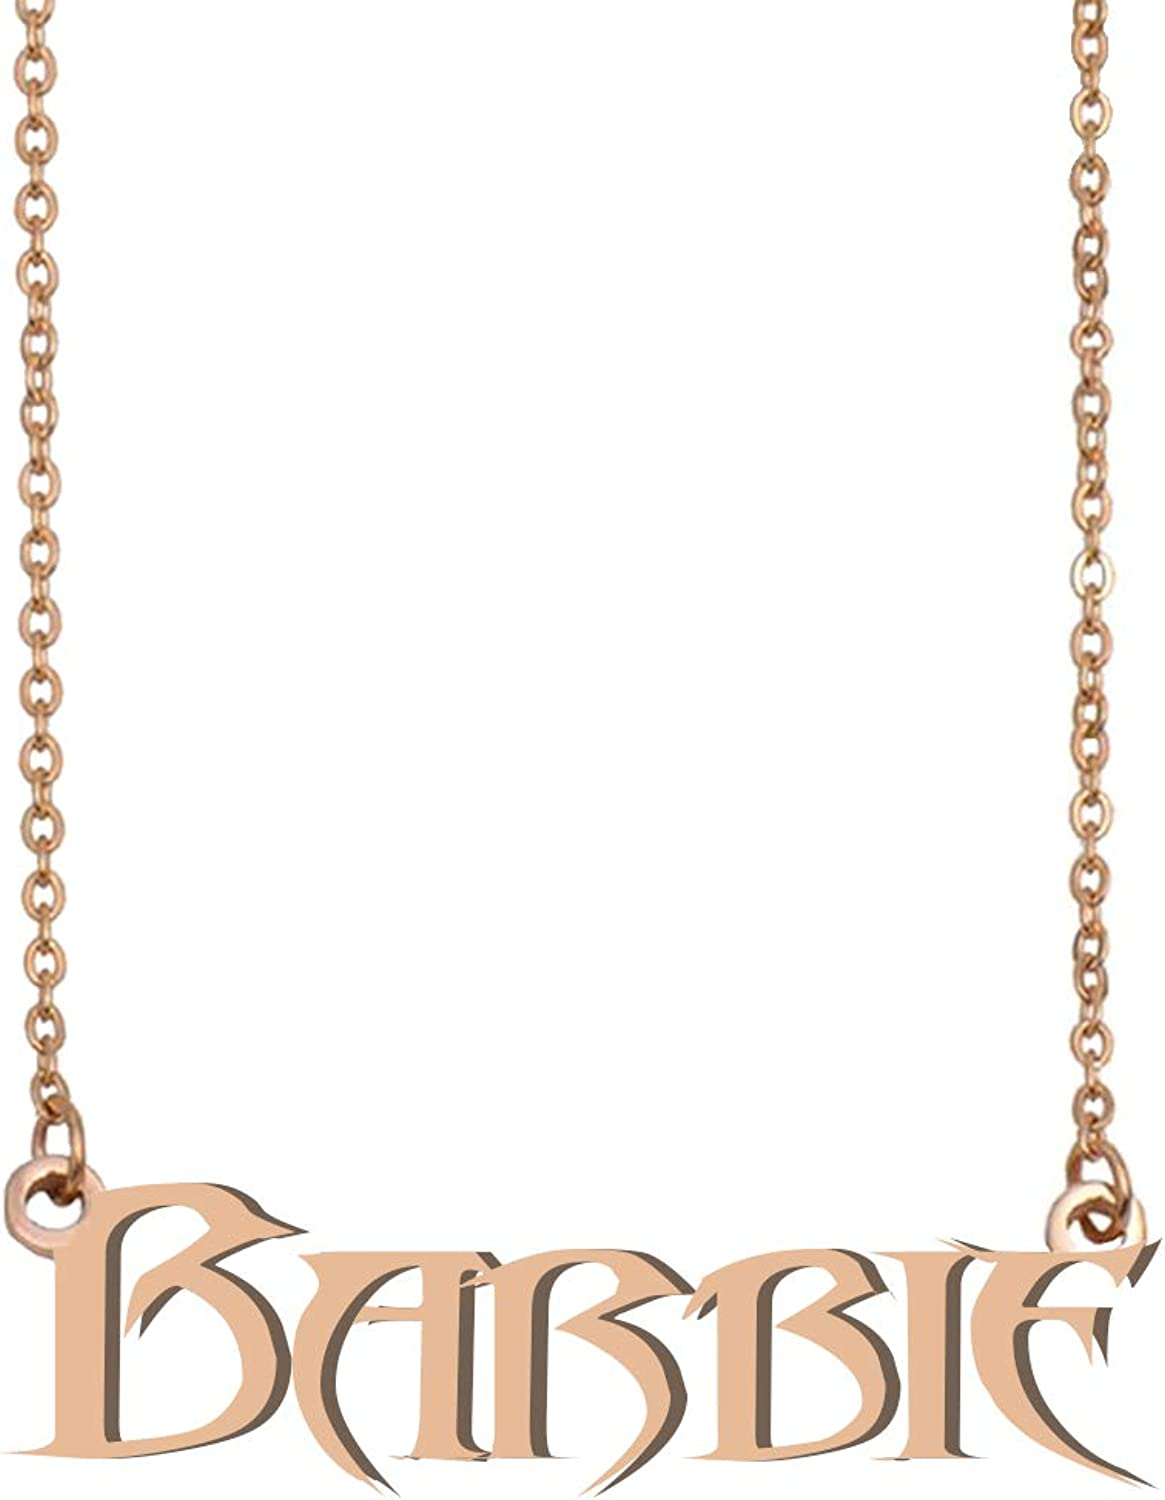 GR35Z9 Personalized Custom Name Necklace Gifts for Womens